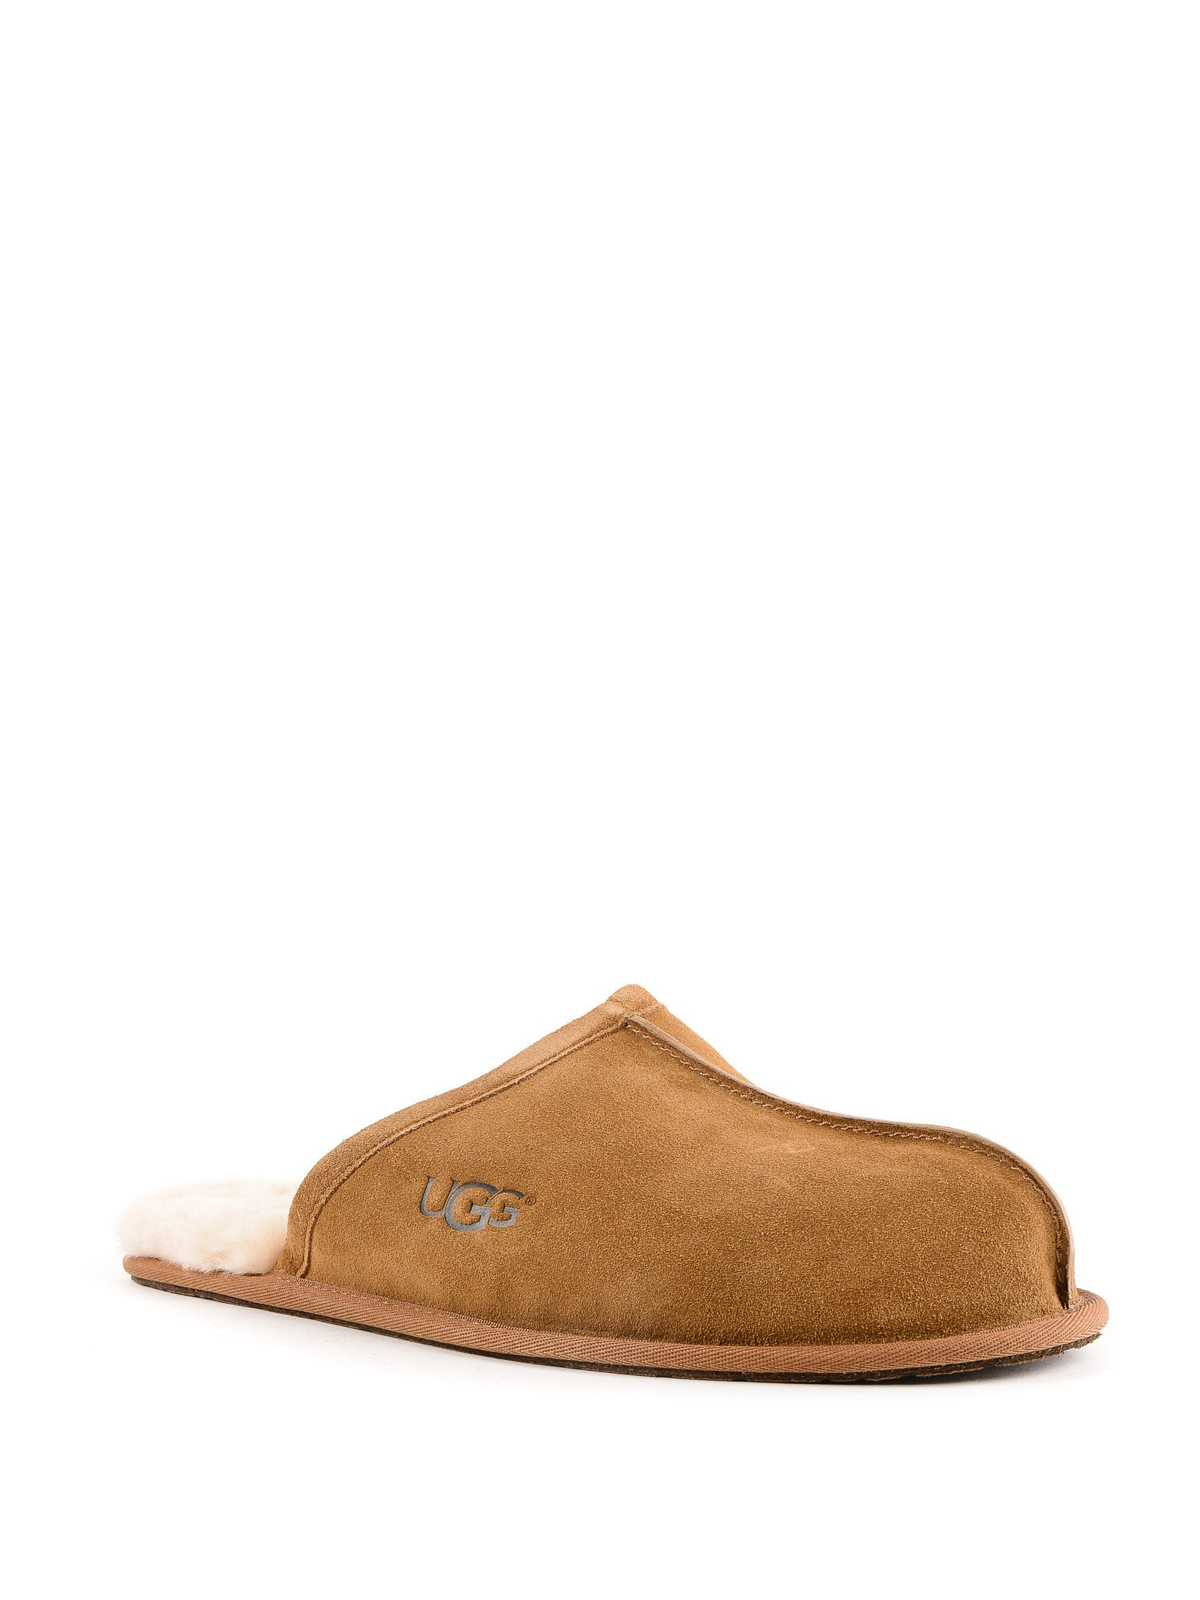 b203ef6be23 Ugg - Wool insole Scuff slippers - Loafers & Slippers ...